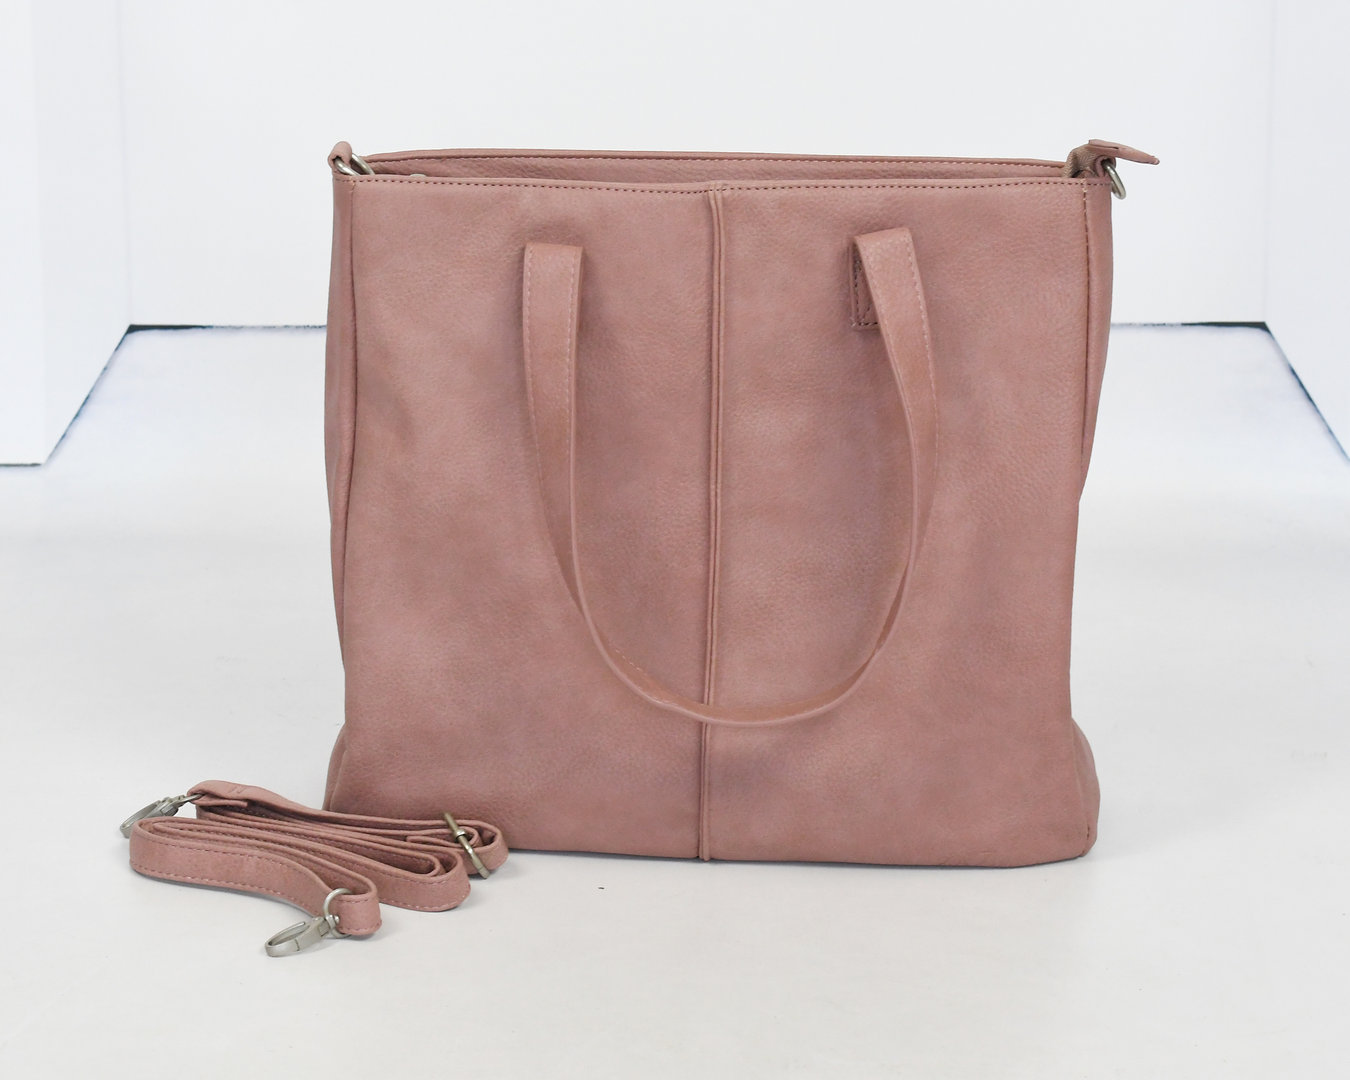 Shoppingtasche Madrid rosa